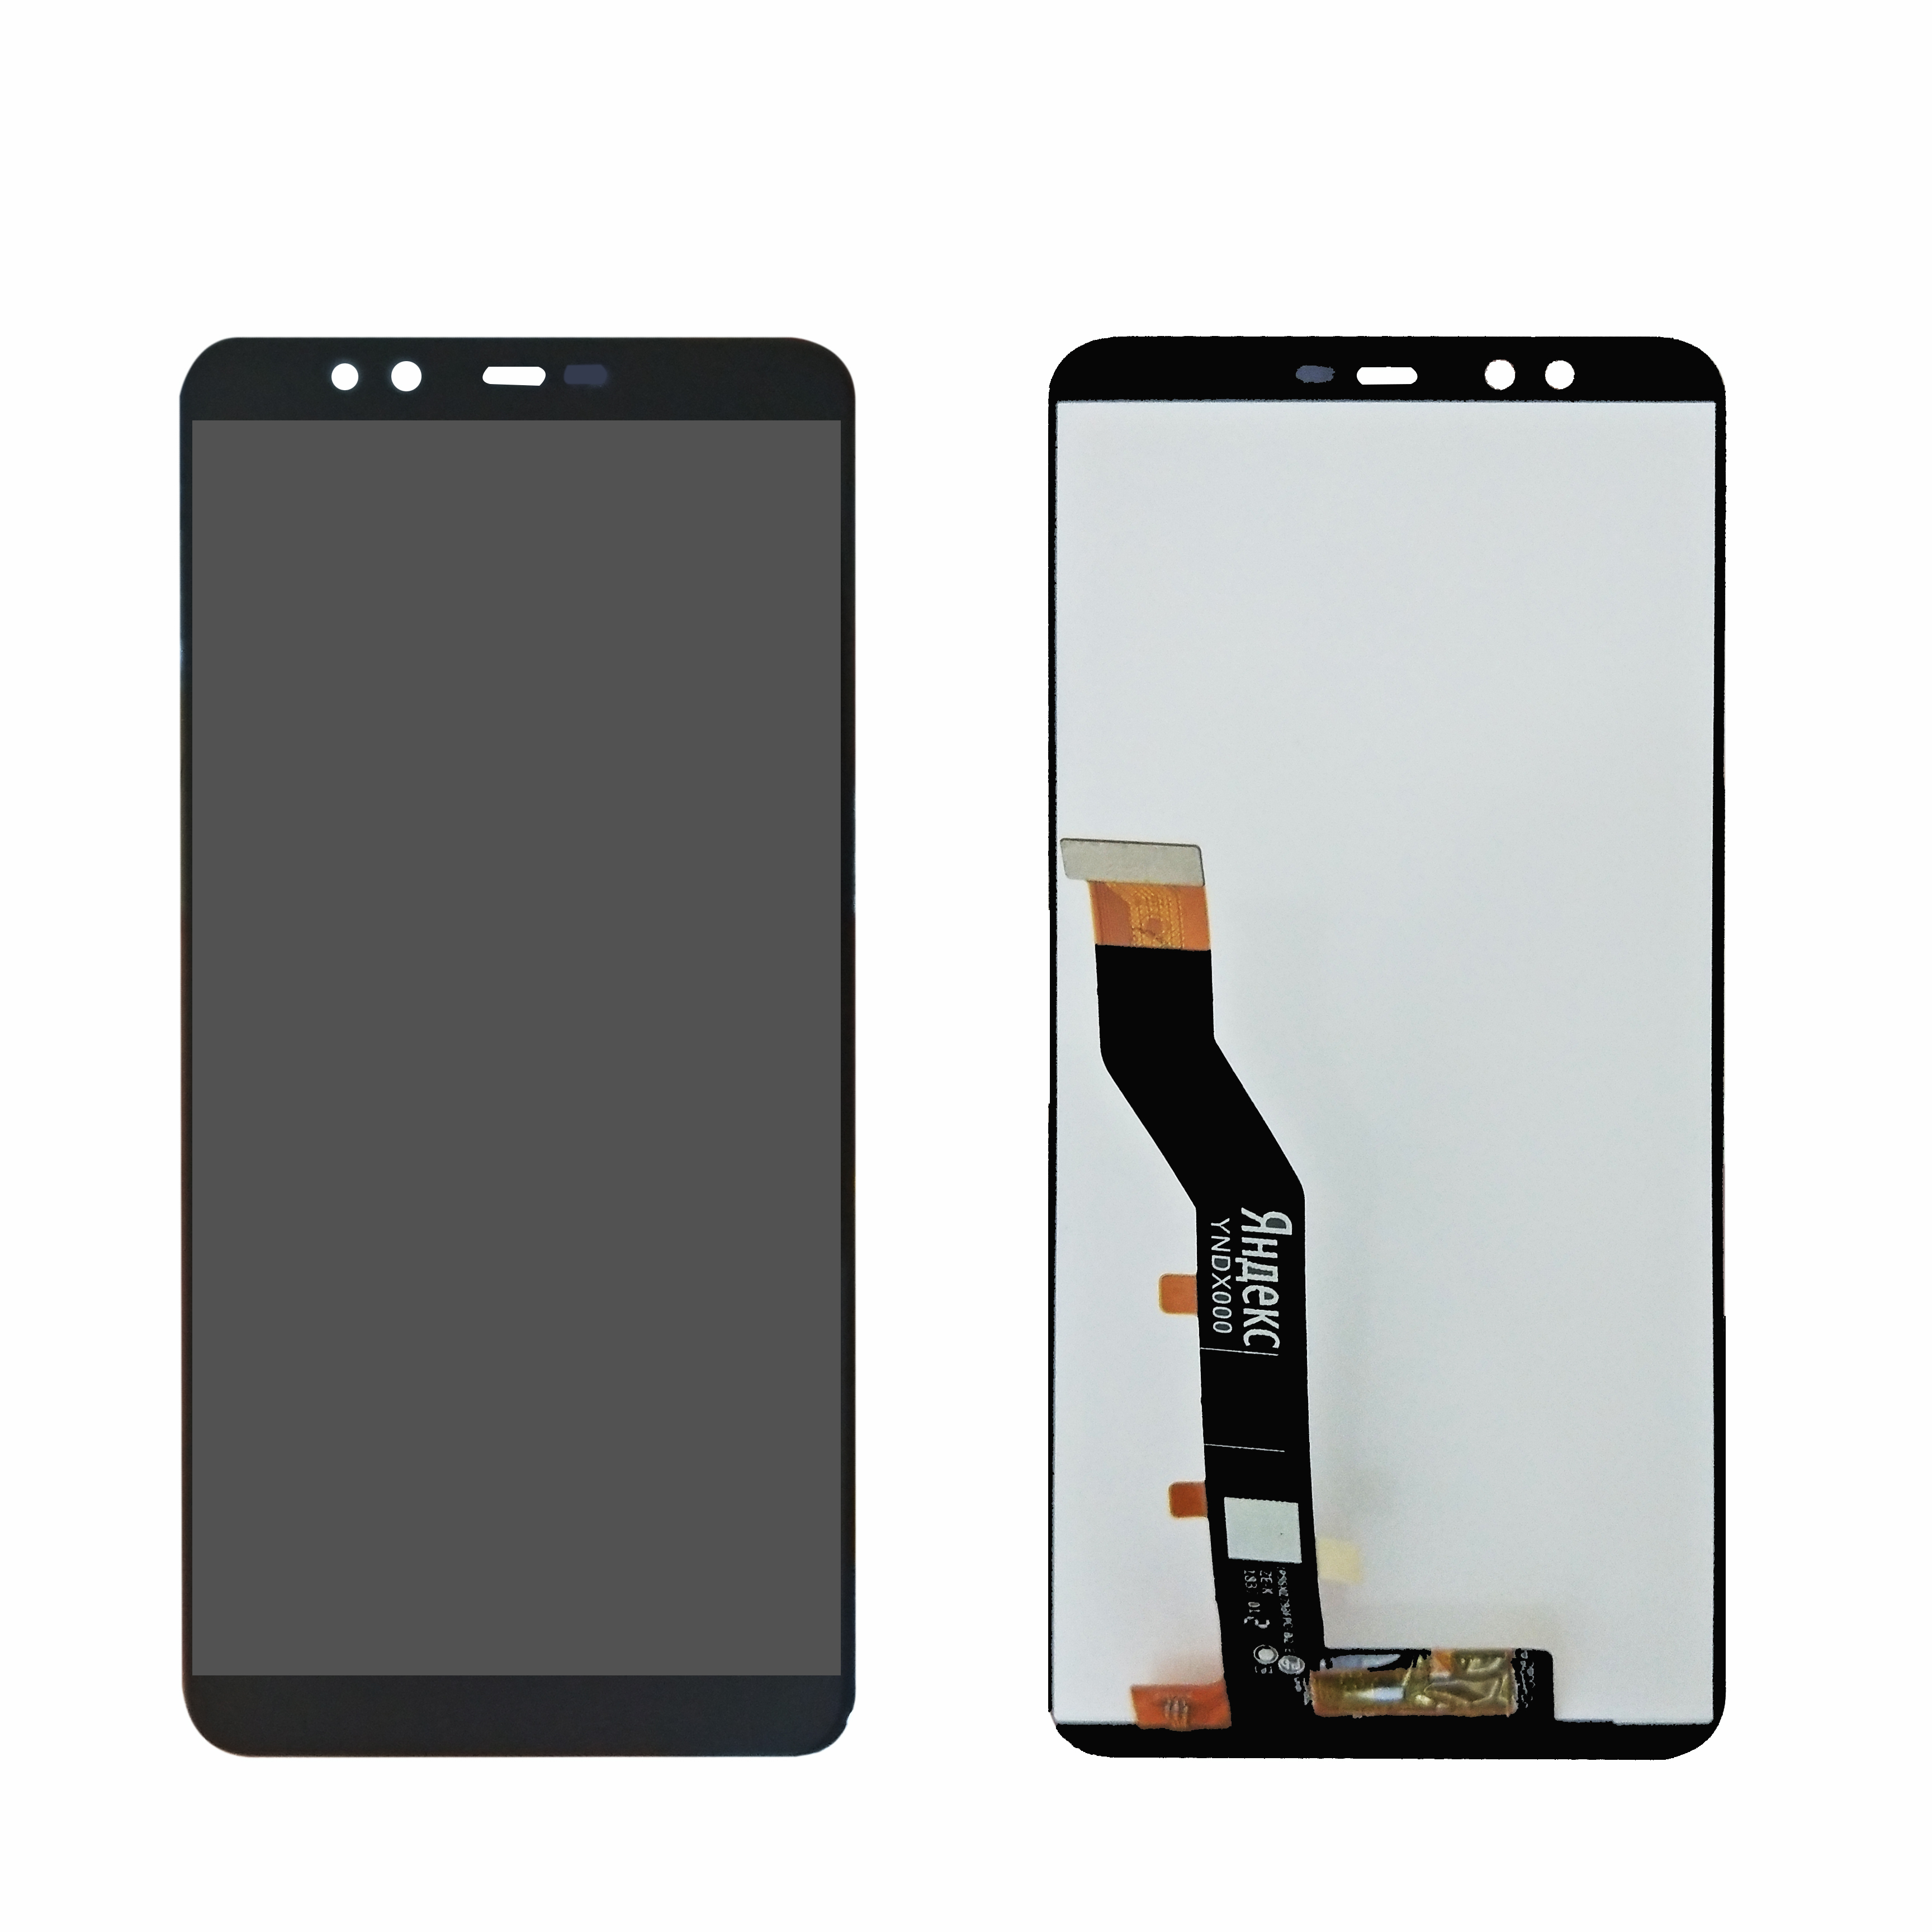 100% Original LCD Display For Yandex Phone 5.65 Inch For Yandex-phone Touch Screen Digitizer With Lcd Display Assembly 2160*1080